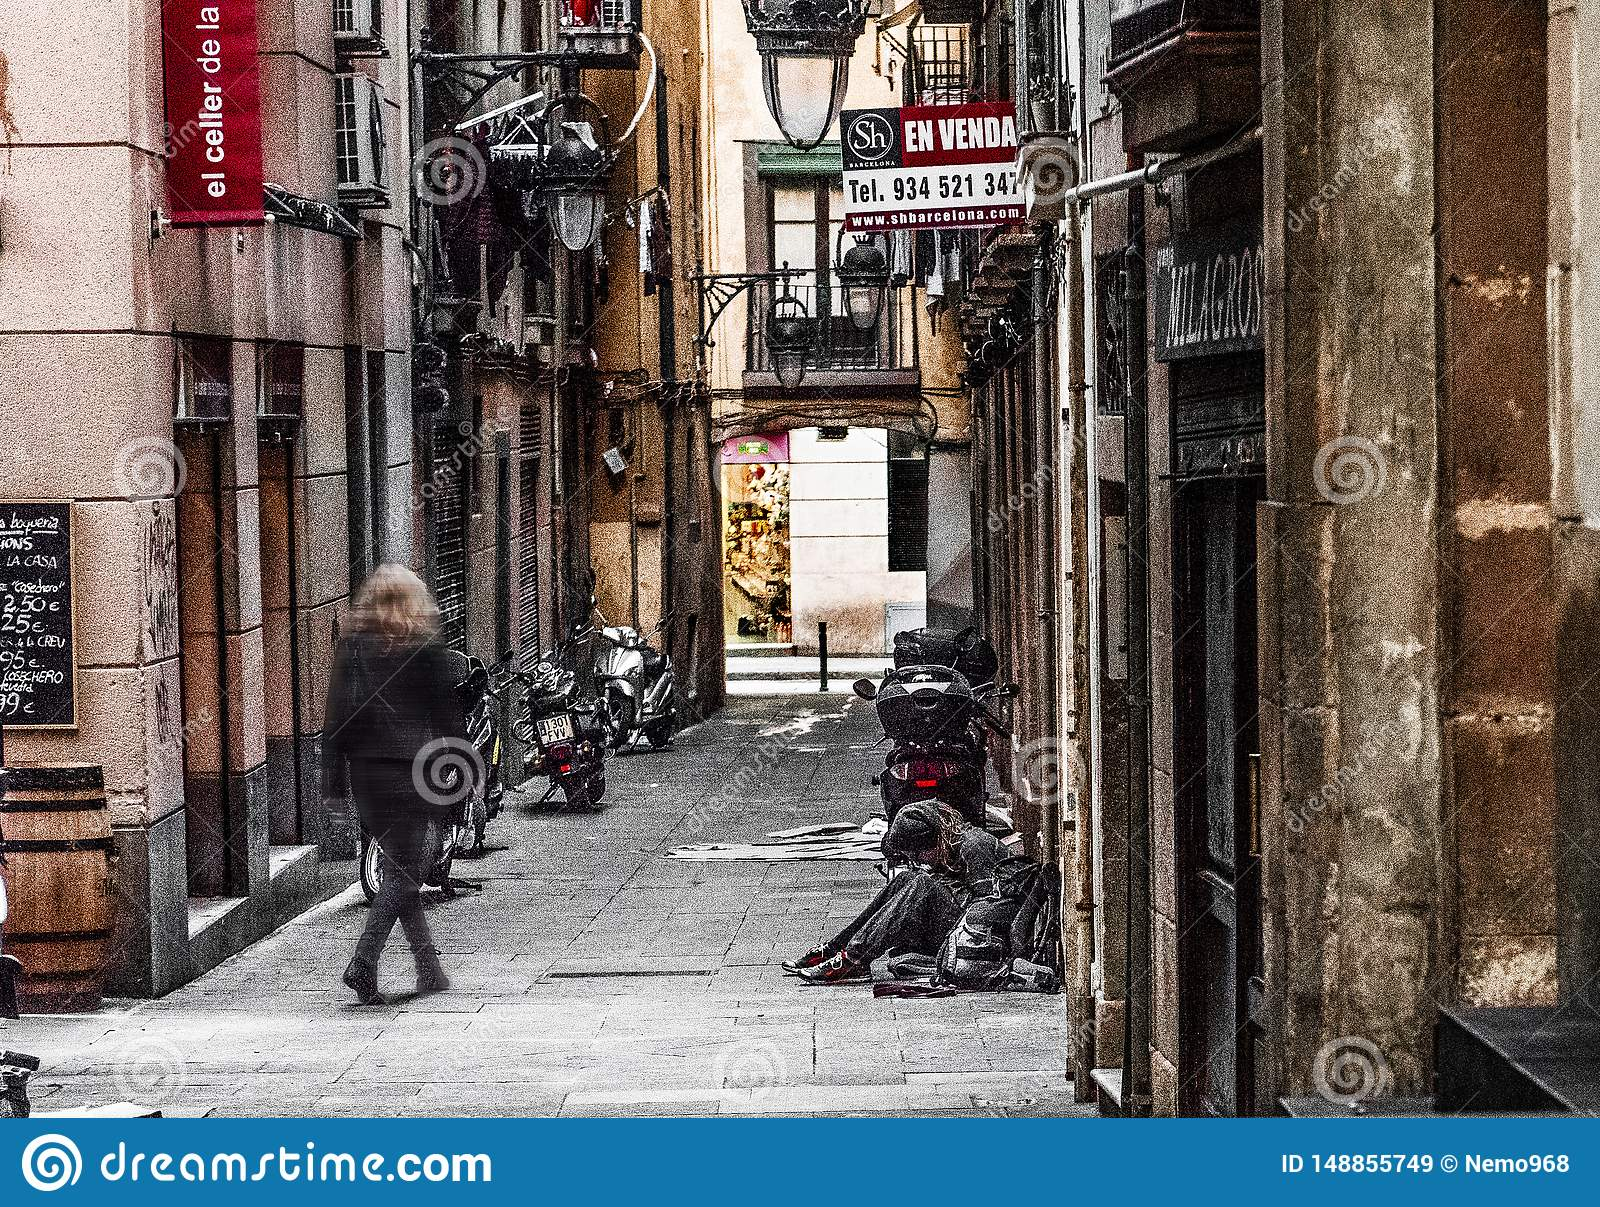 Barcelona Spain, downtown alley, narrow street, woman sitting on the ground